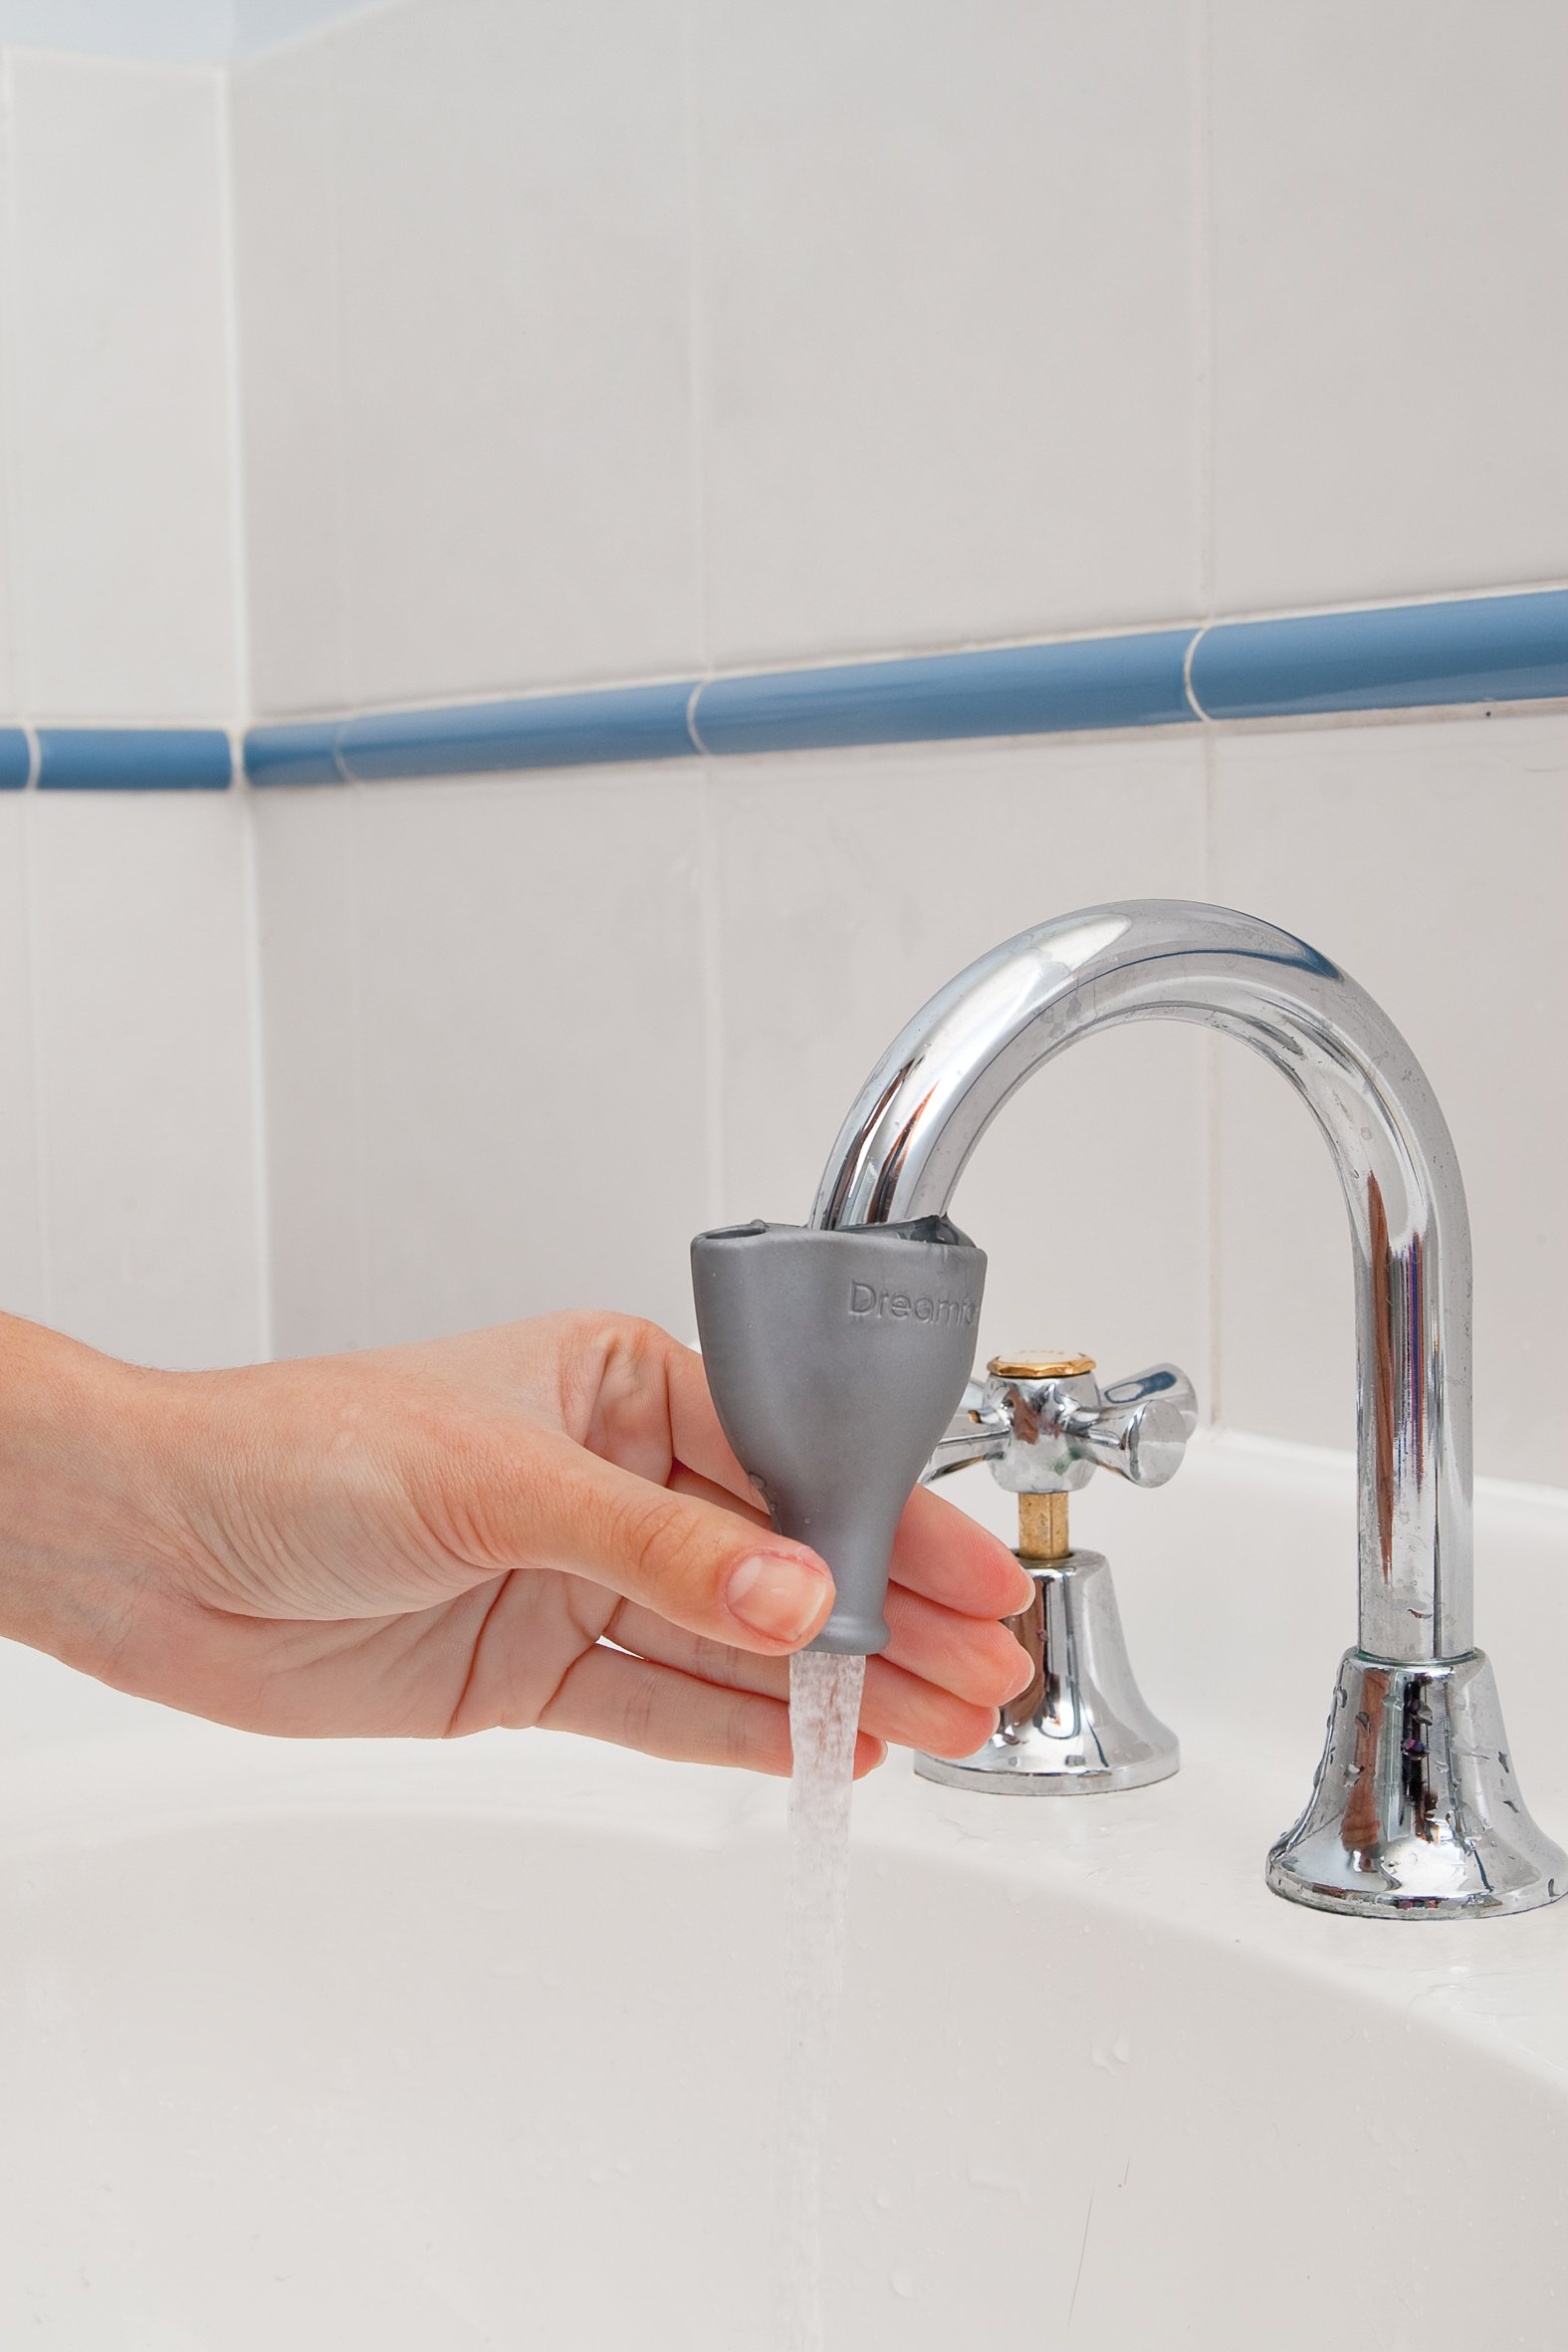 Dreamfarm Tapi - Faucet Drinking Fountain, Fits Most Taps (Assorted Colors) by Dreamfarm (Image #5)